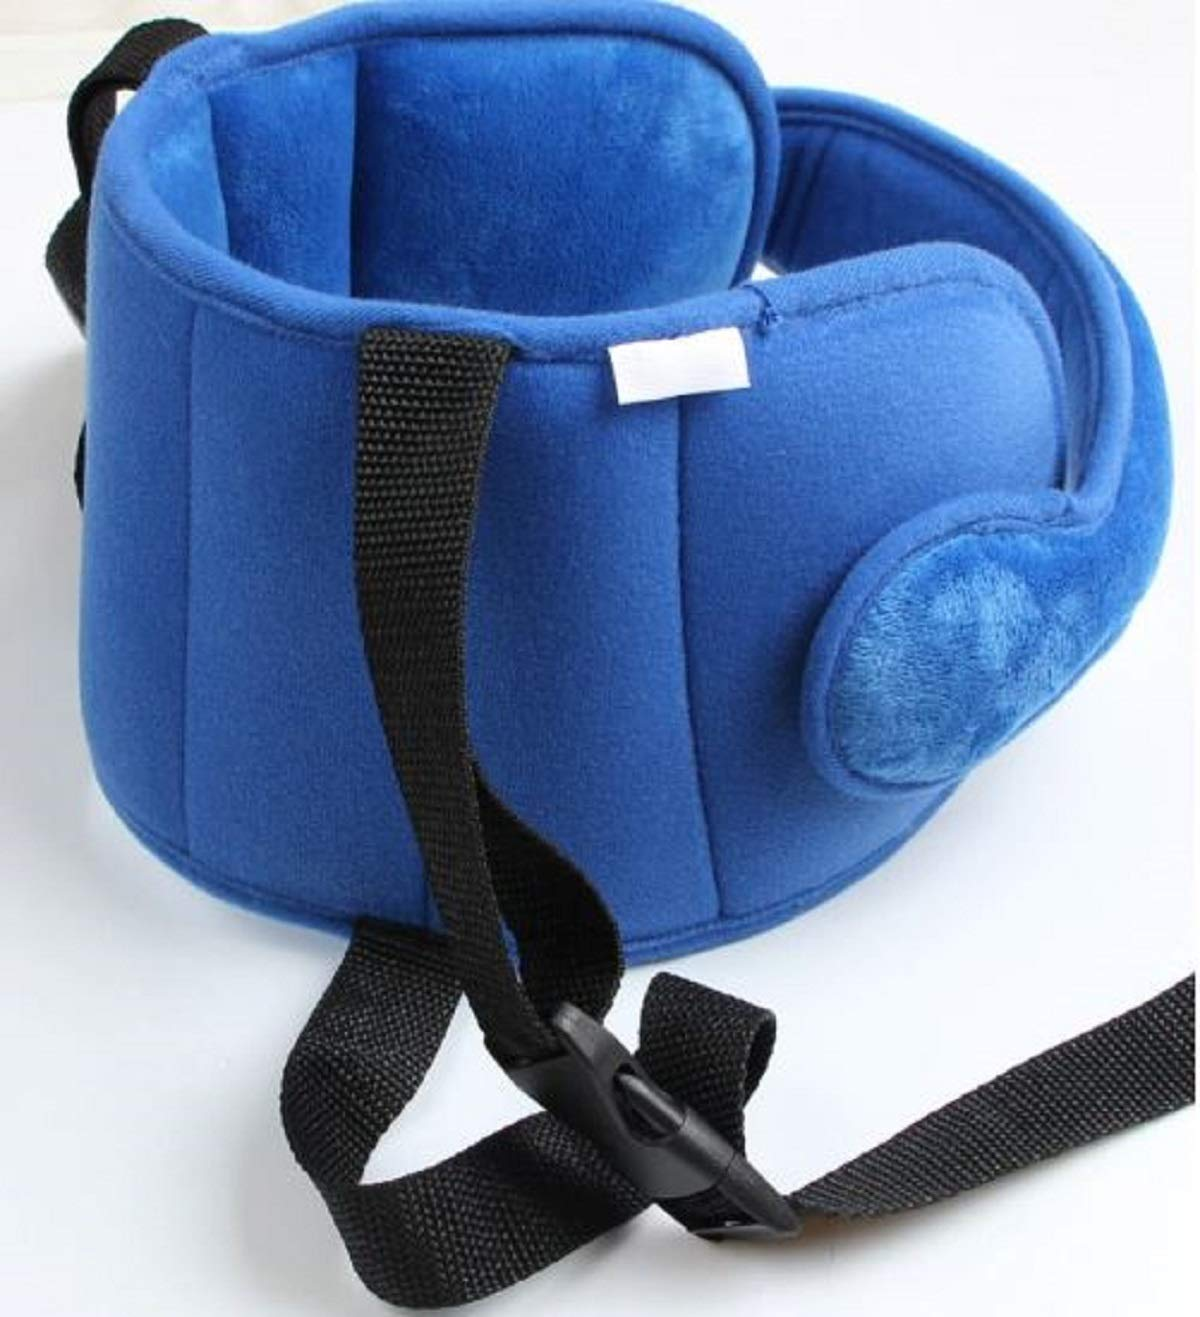 vocheer Child Car Seat Head Support Blue Adjustable Car Seat Head Strap for Kids Baby Comfortable Neck Relief Head Protector Strap